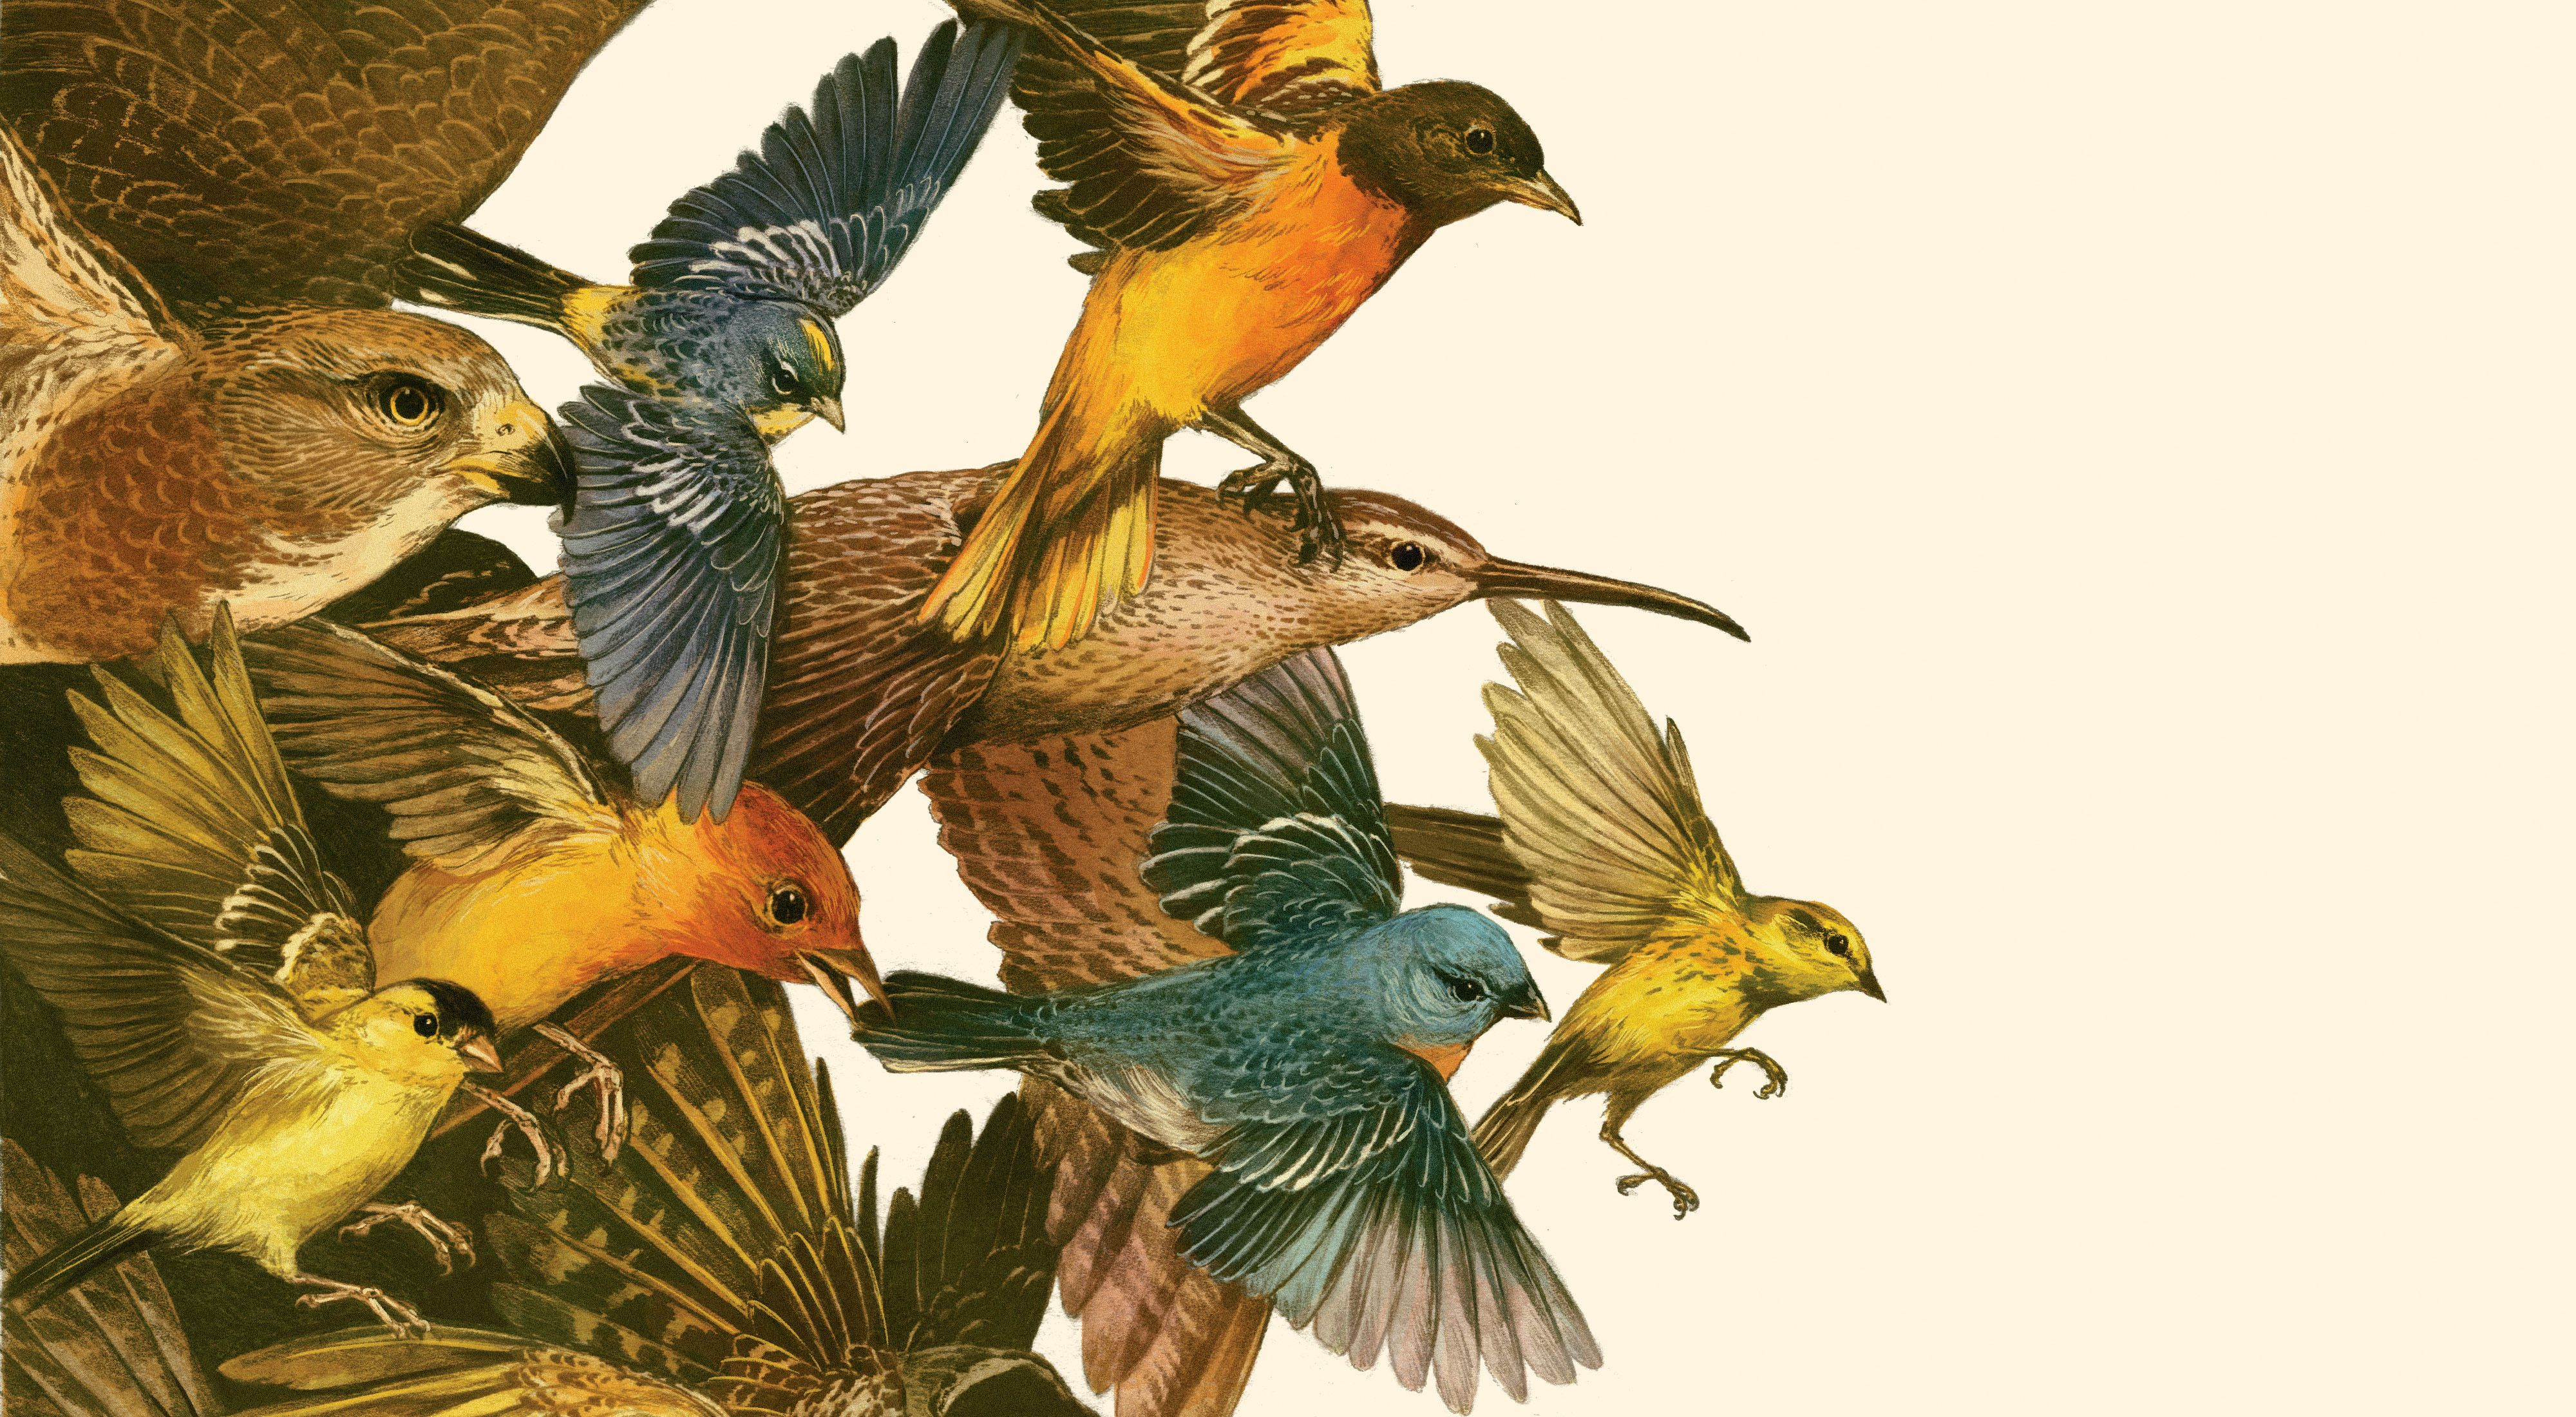 a colorful illustration of multiple species of birds